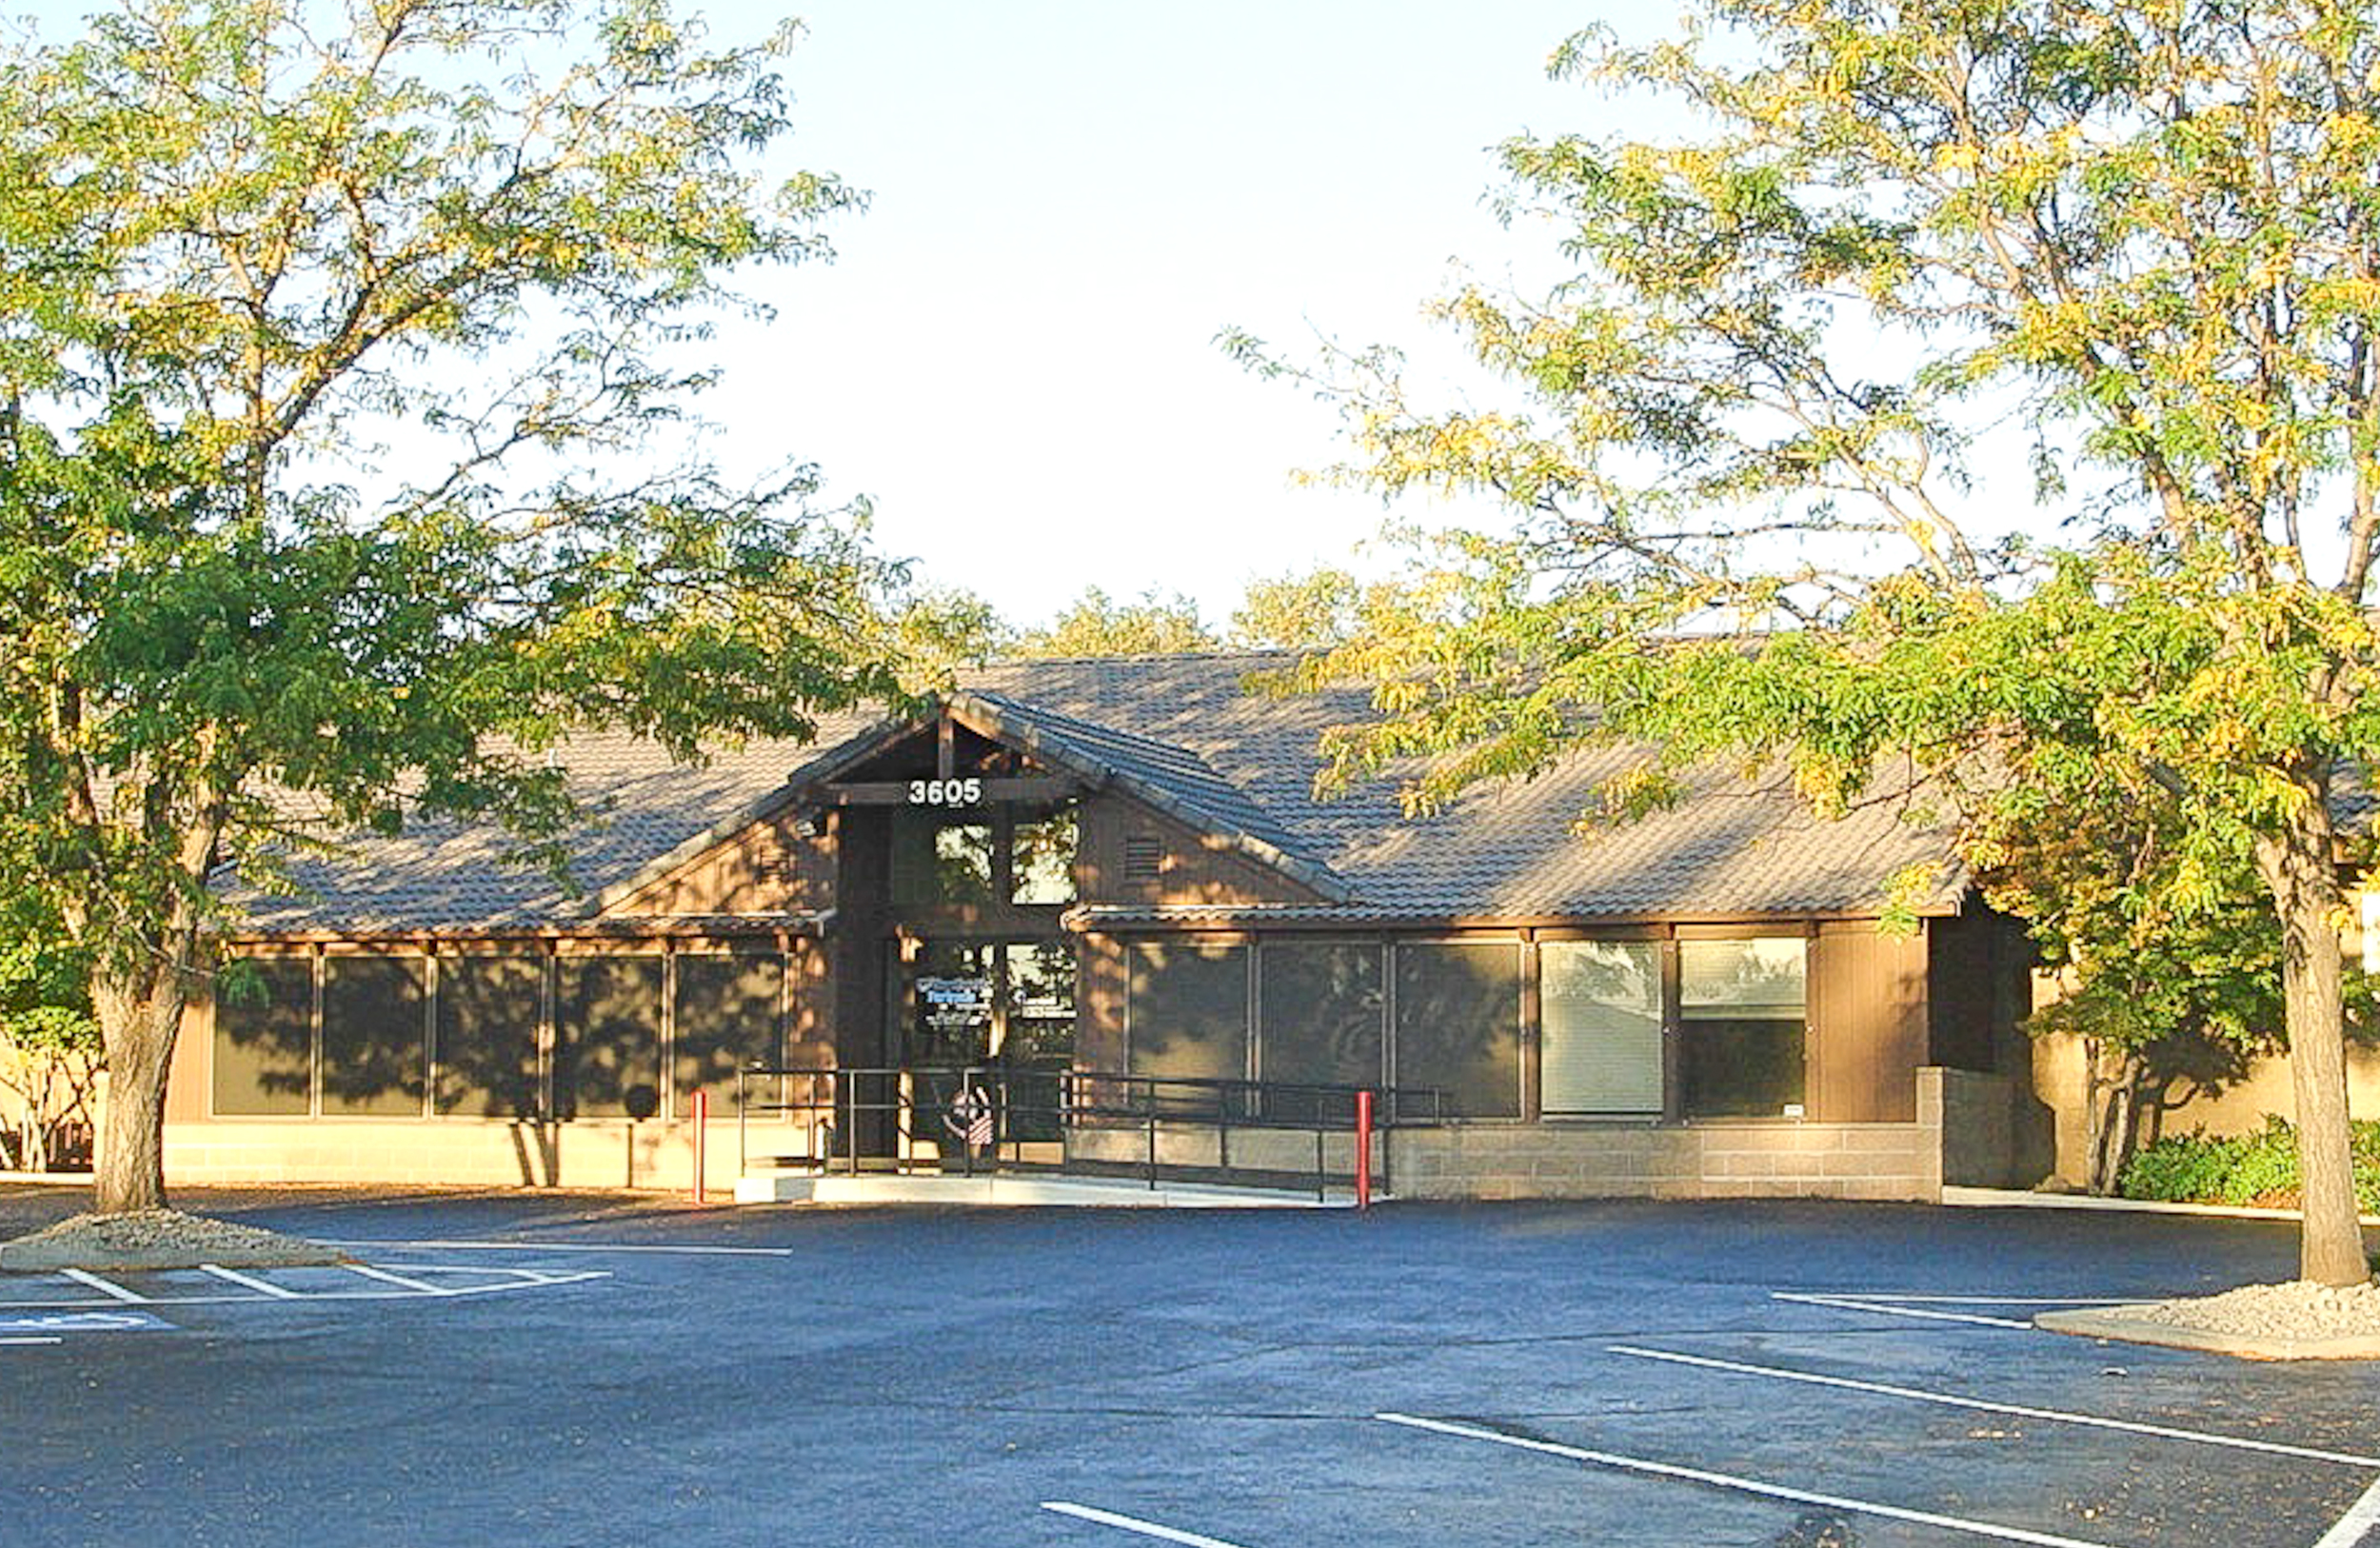 3605 Grant Drive Medical Office Building